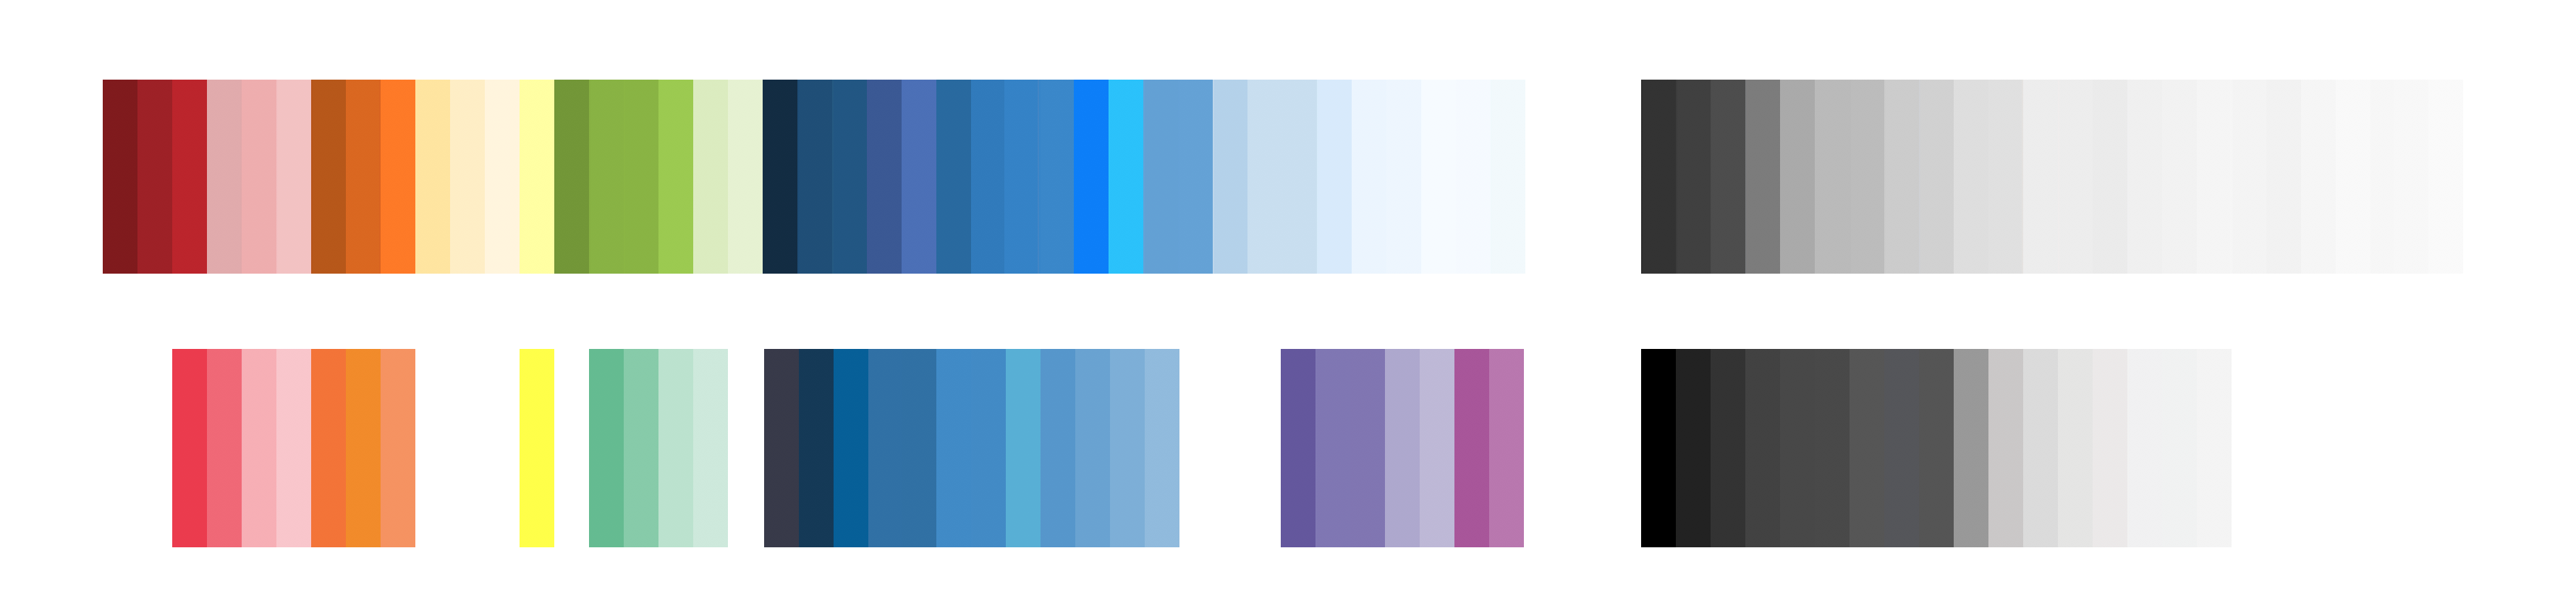 Above - our product palette. Below - our marketing palette aligned by hue